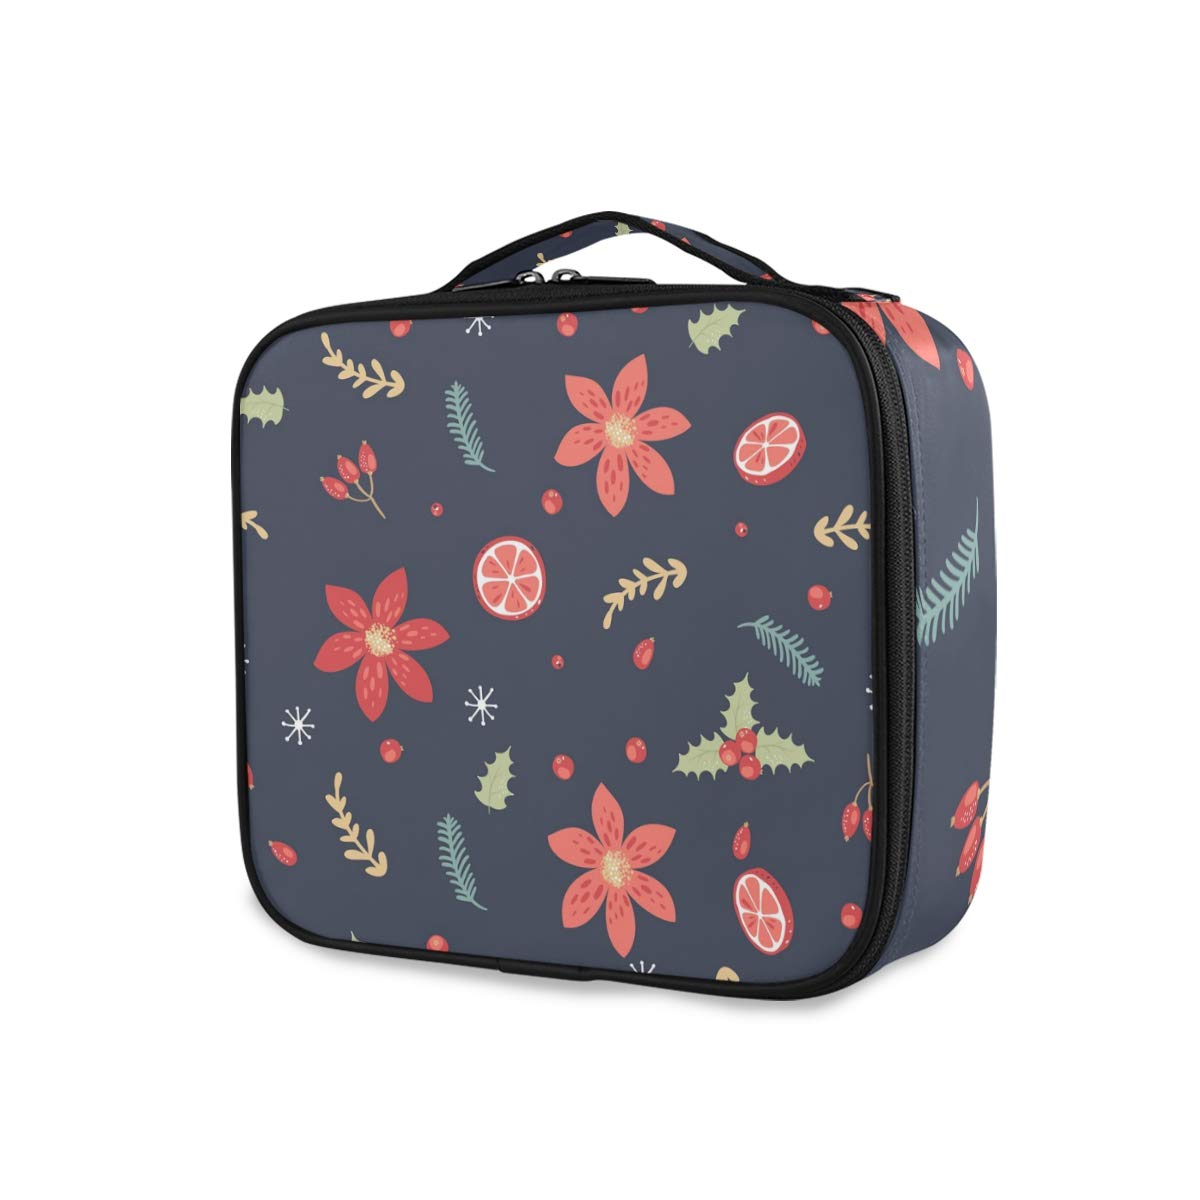 Mr.Lucien Travel Makeup Train Case Christmas Flowers Colorful Th Max 68% OFF Cheap